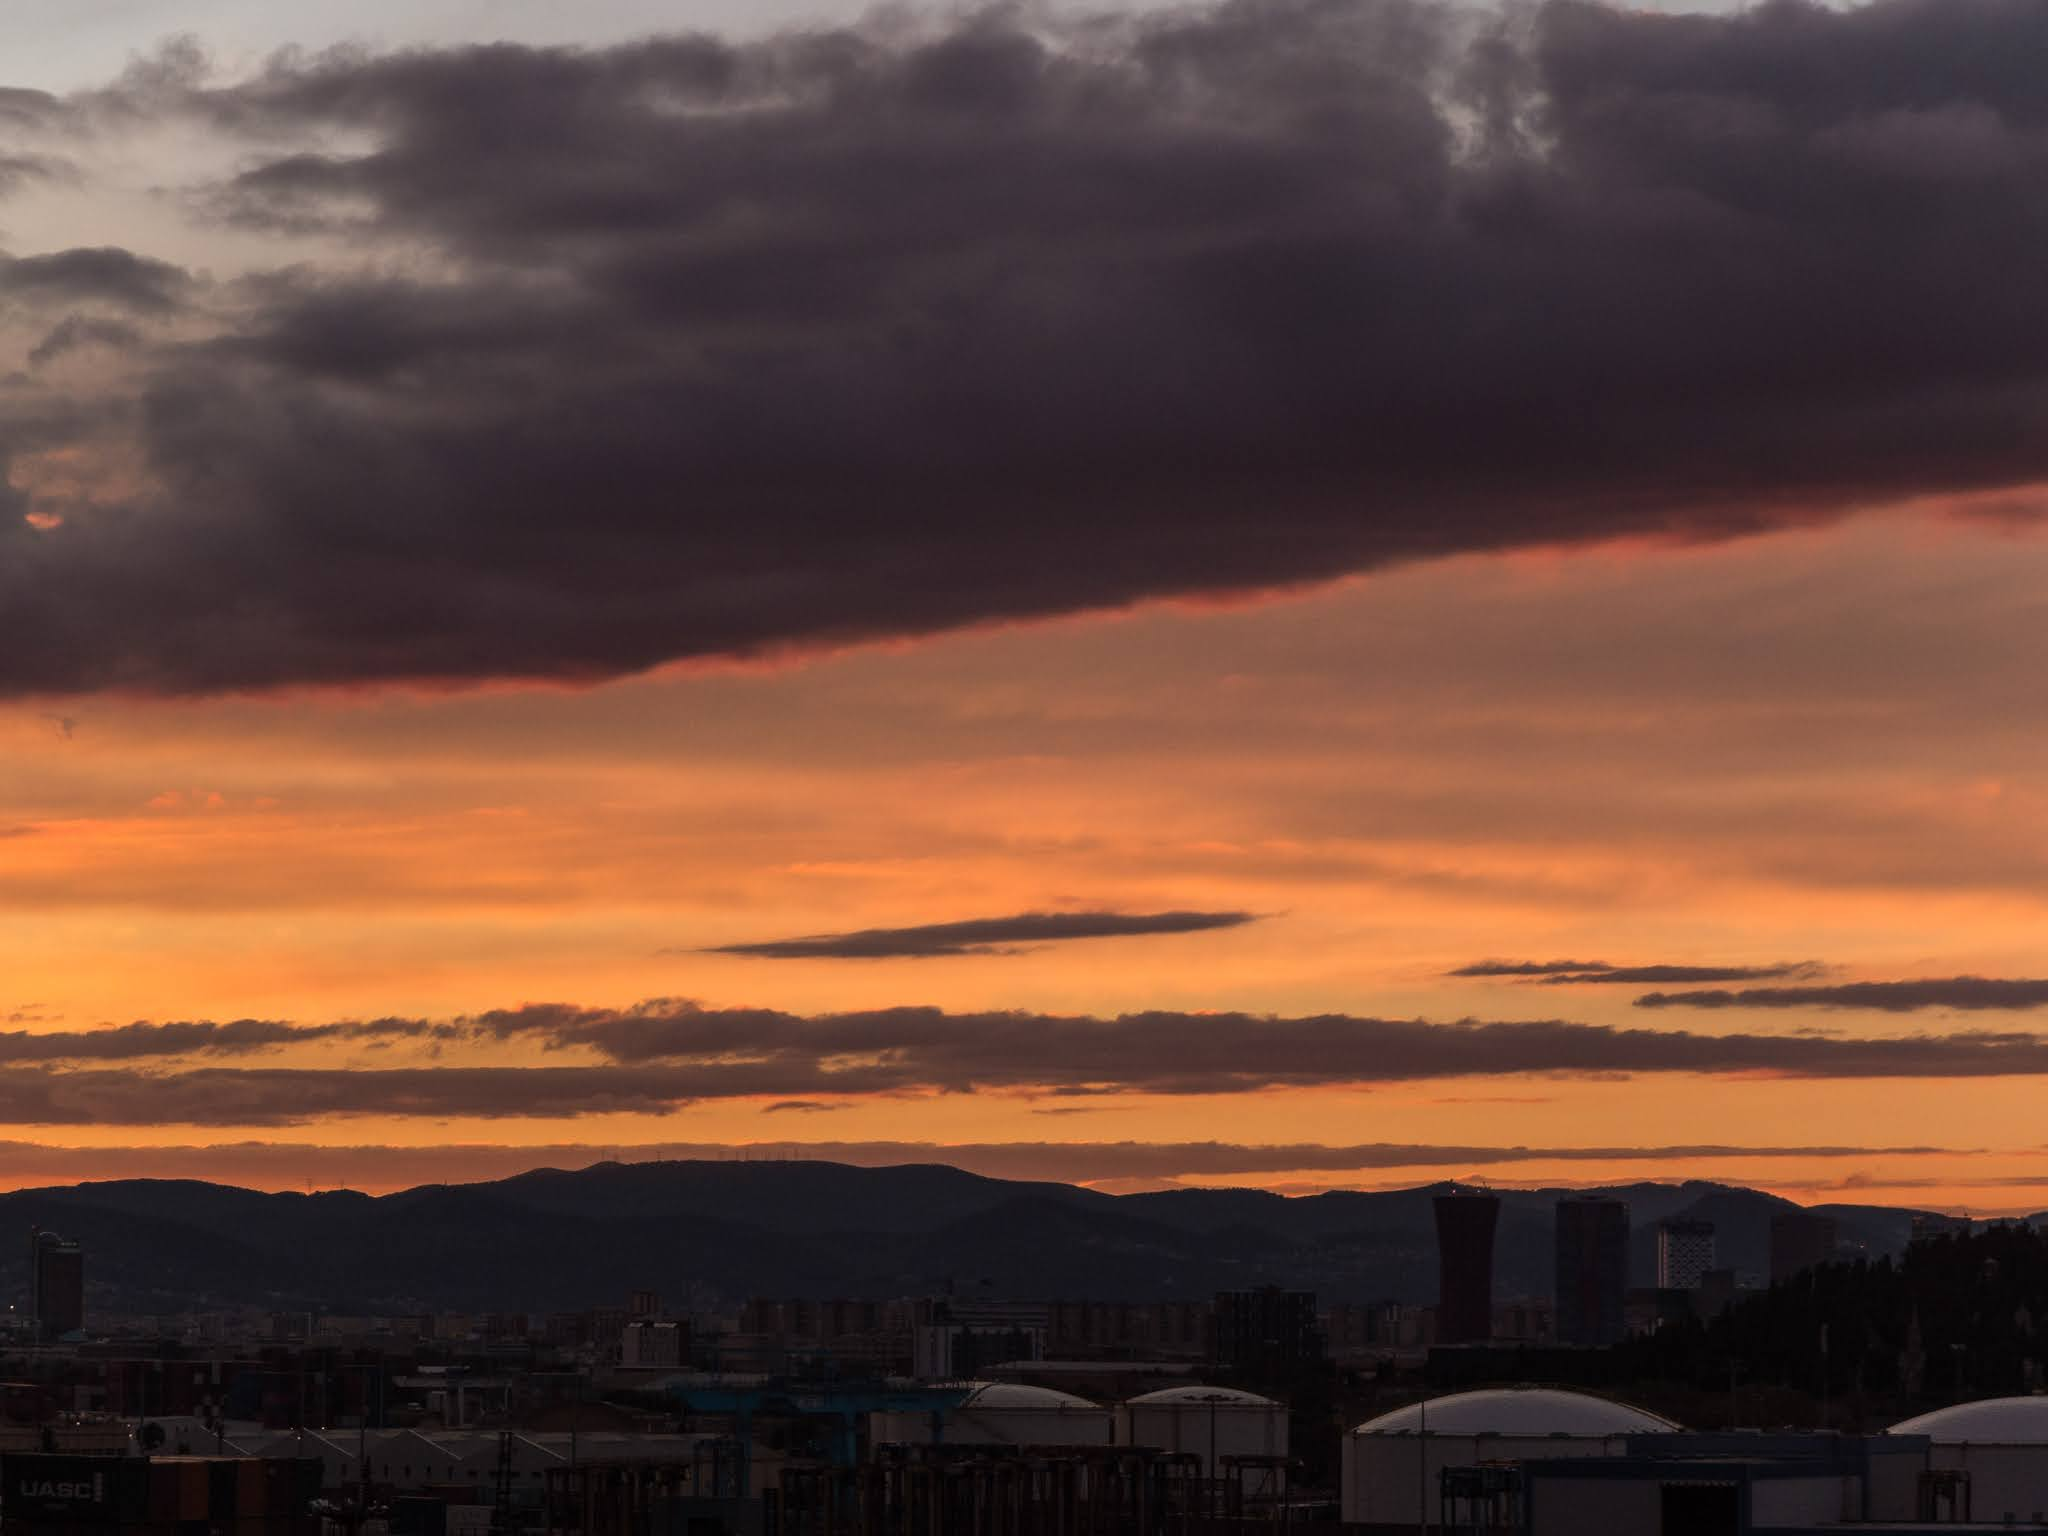 Sunset view from the port of Barcelona with a mountain range in the background.